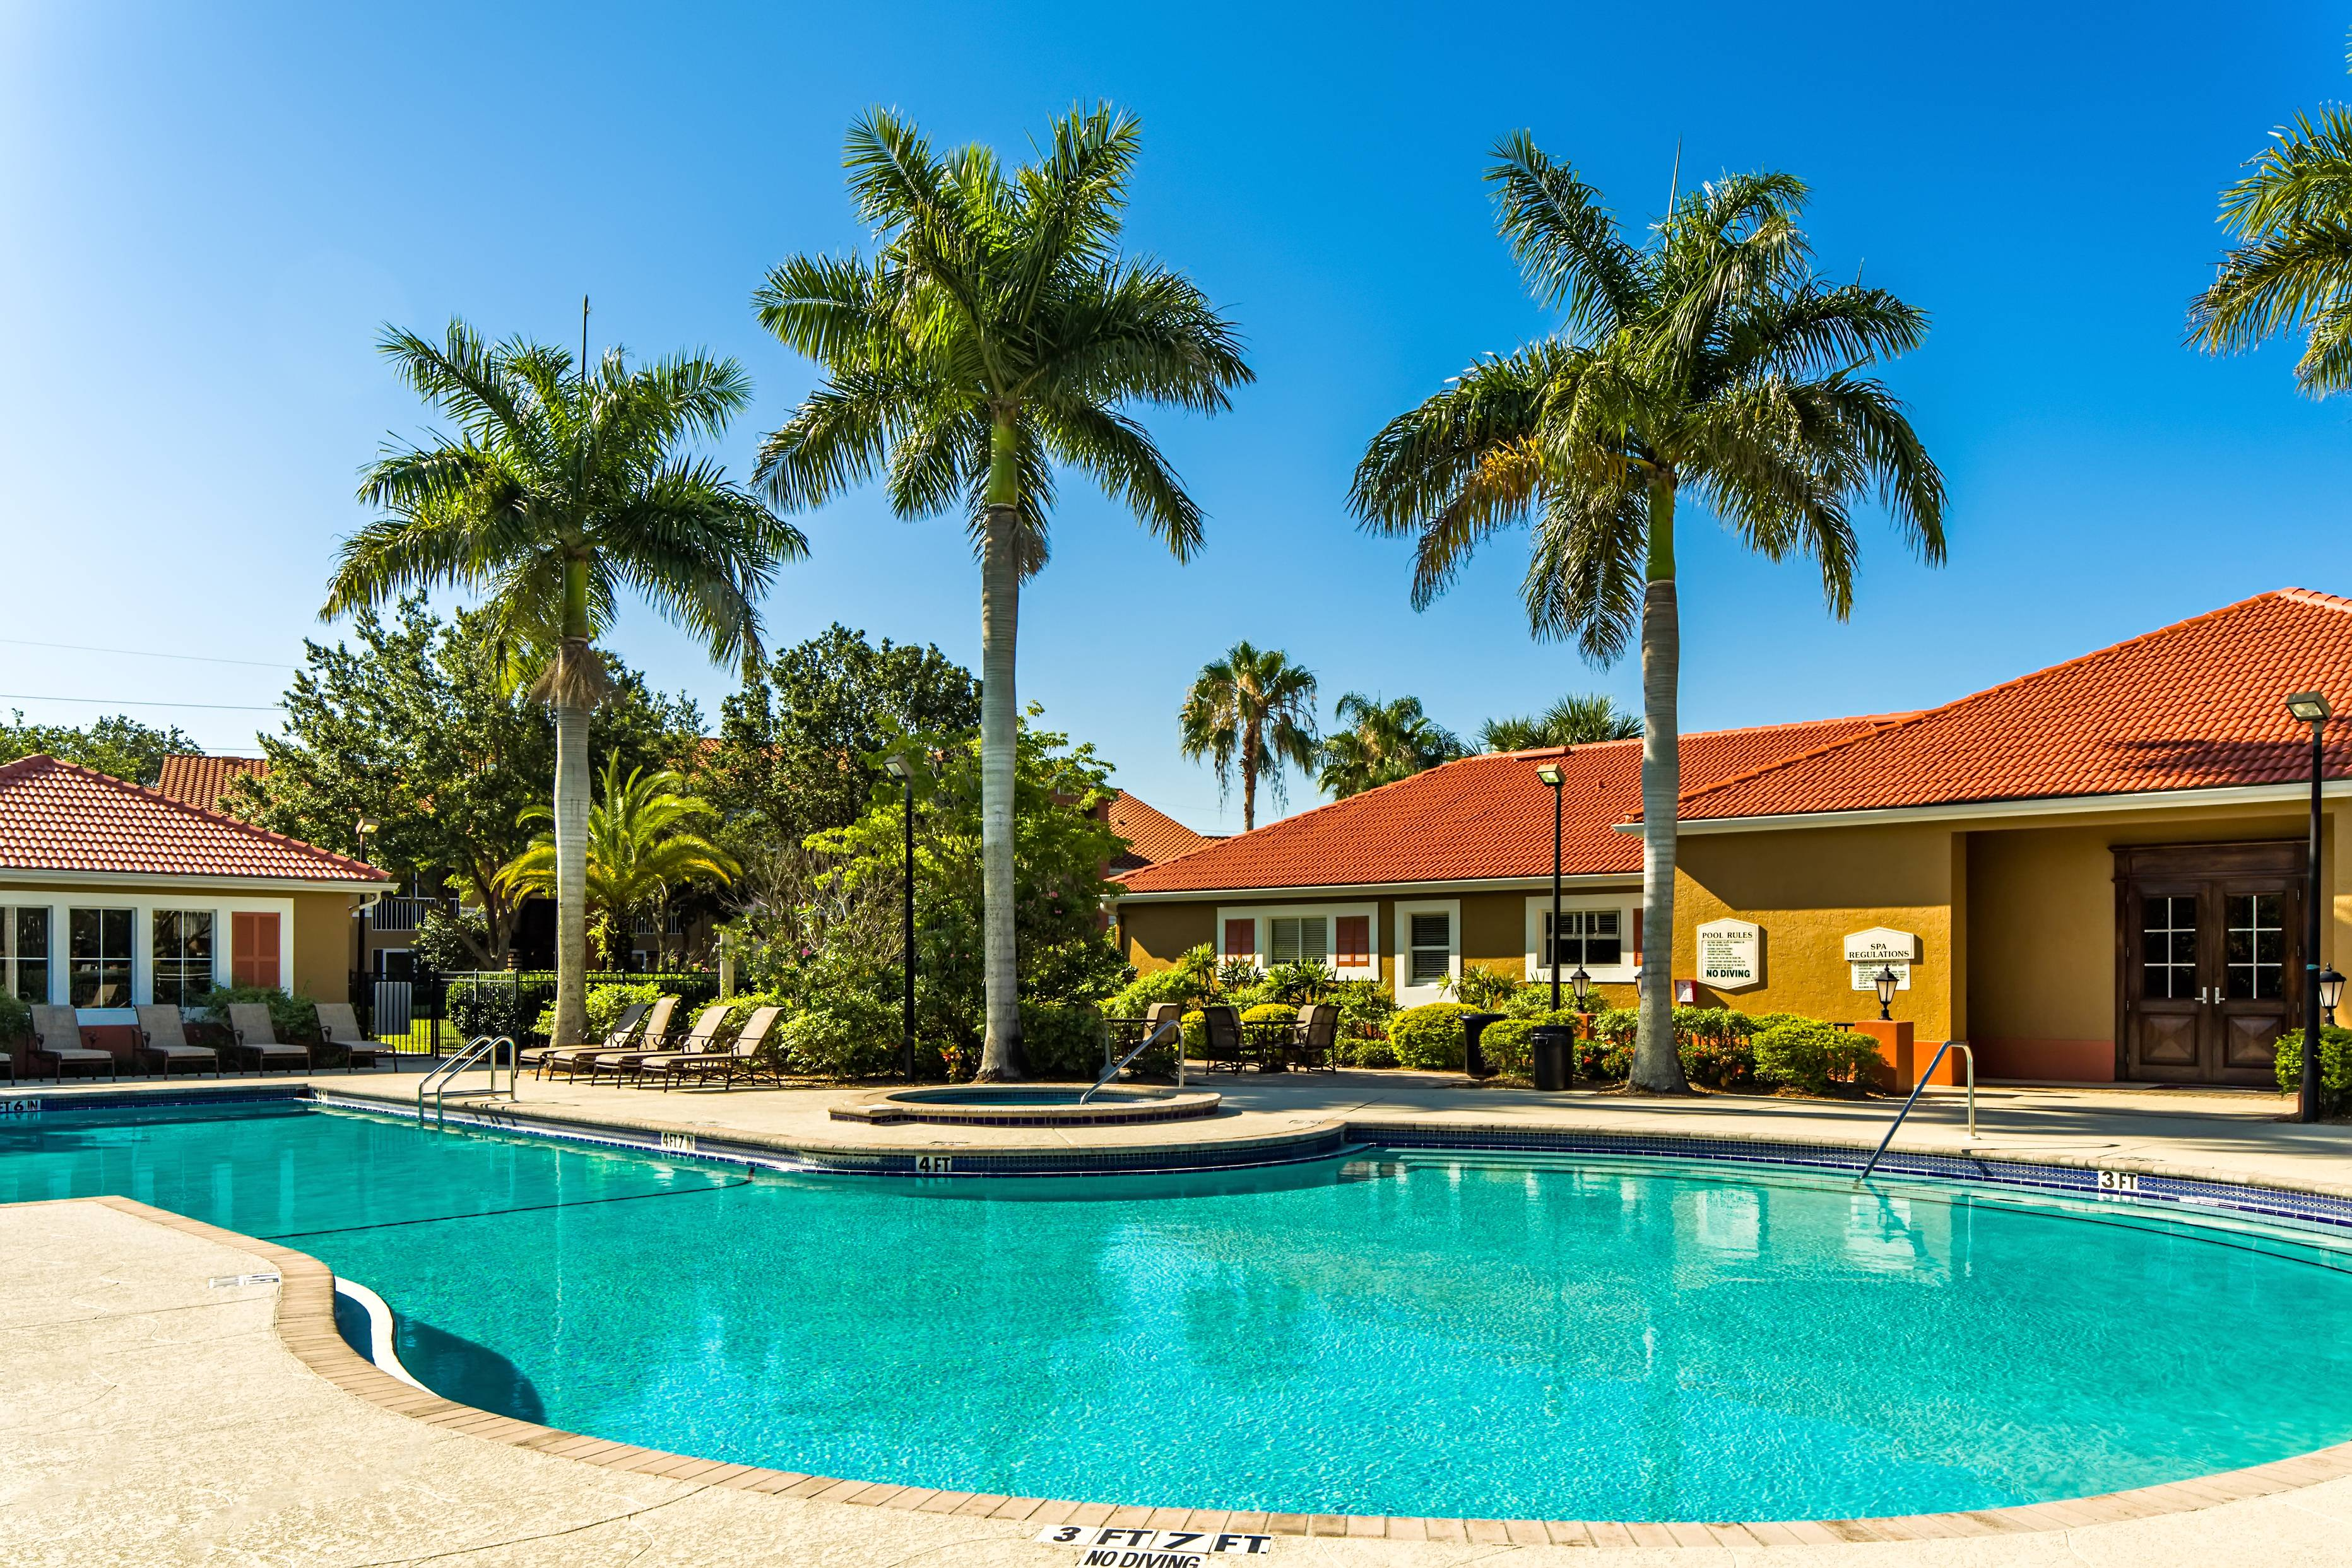 20 Best Apartments In Sarasota FL with pictures